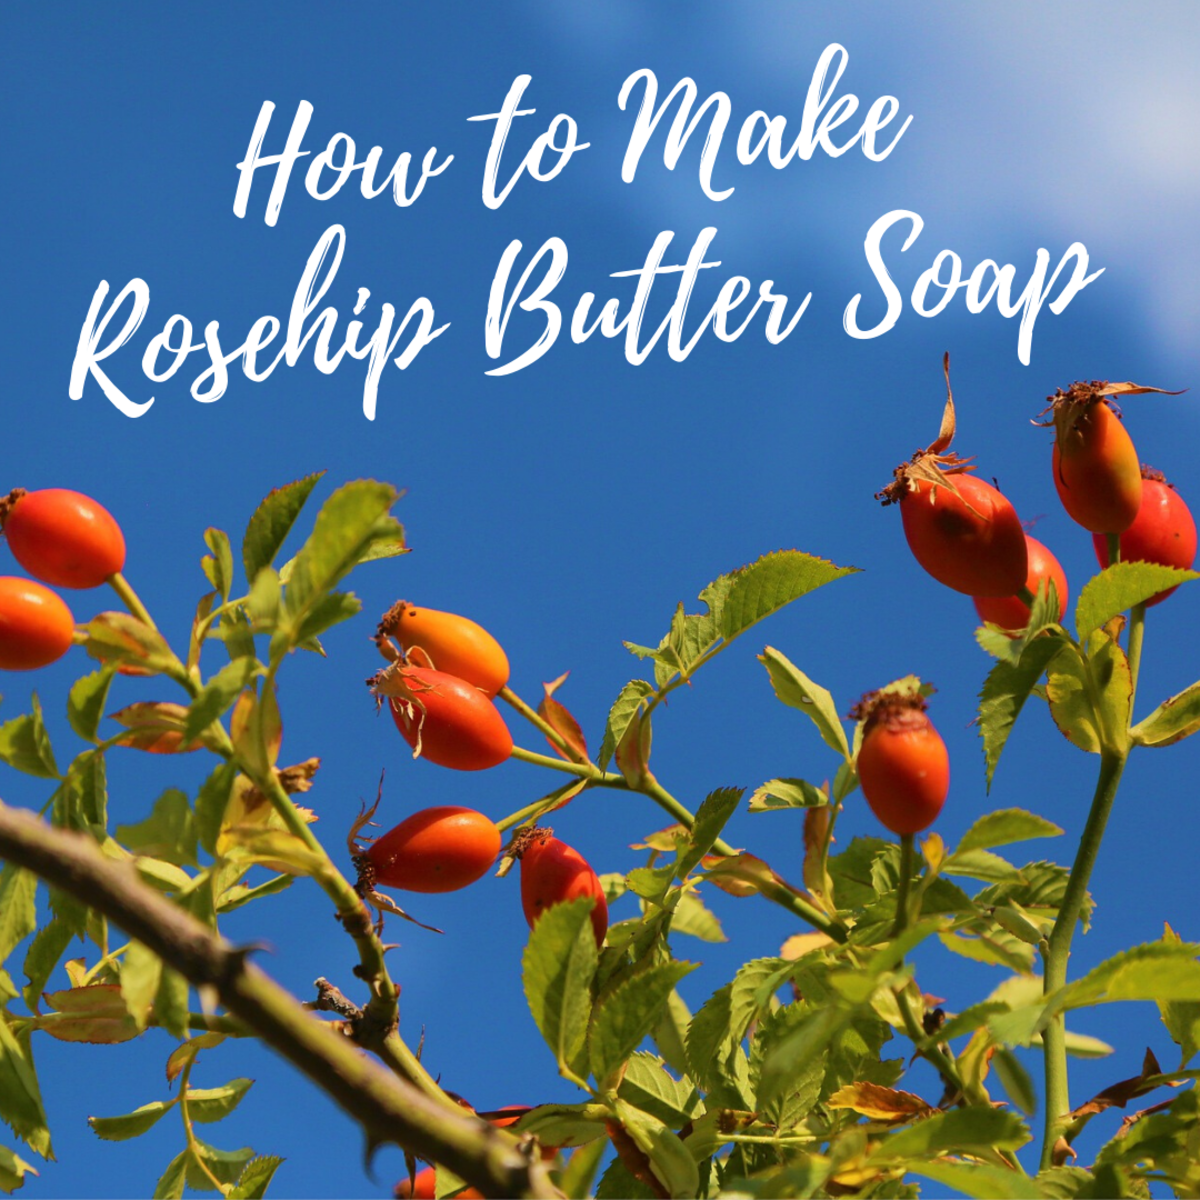 This article will show you how to make a rosehip butter soap that can be great for people with the skin condition rosacea.